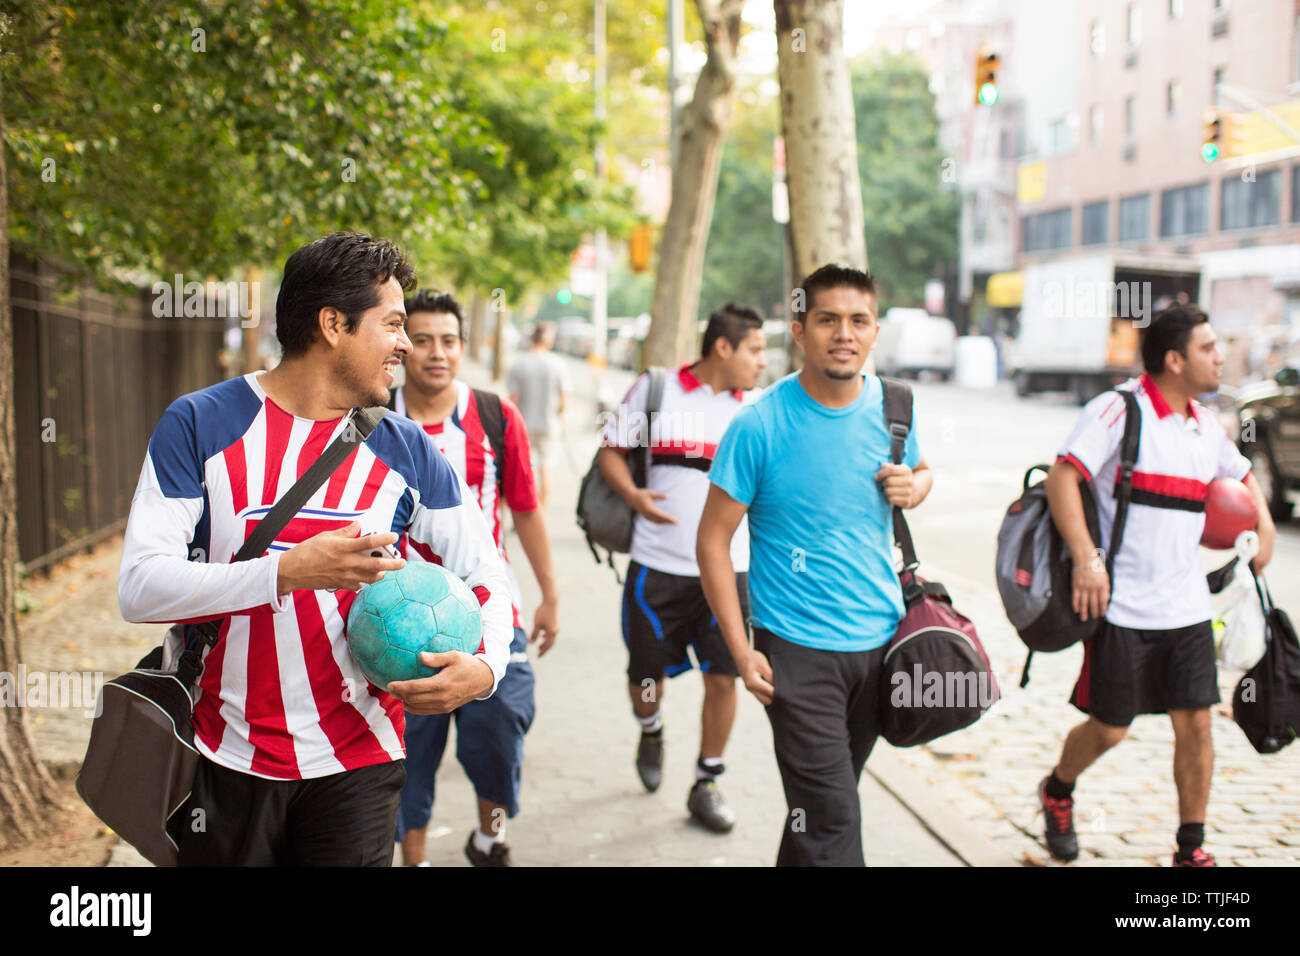 Happy soccer players walking on footpath - Stock Image